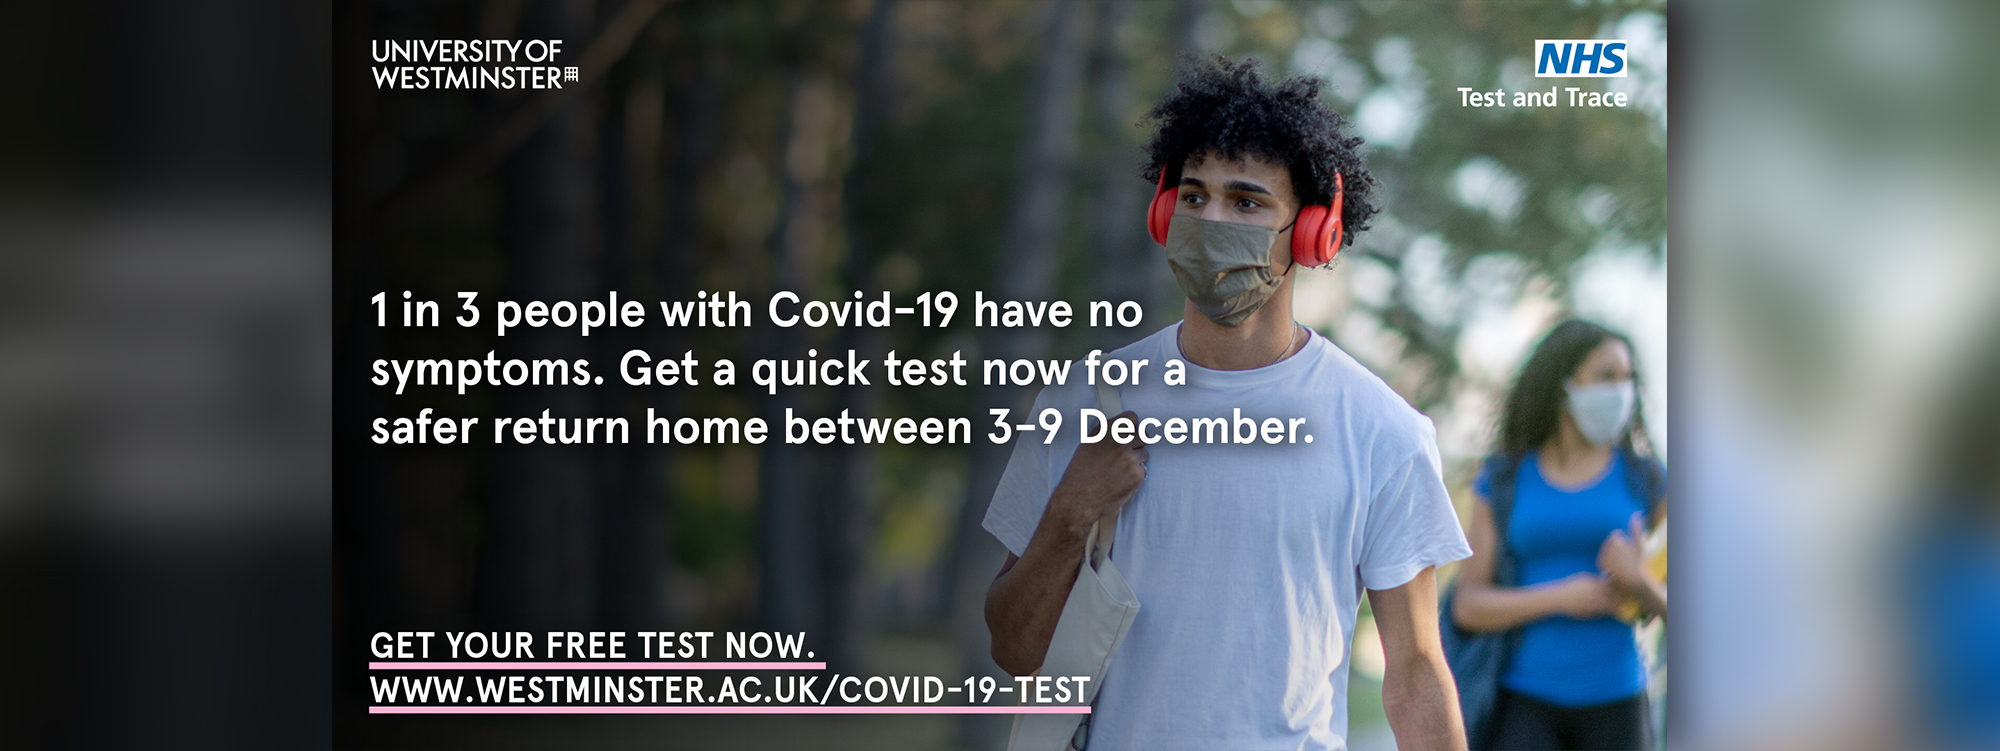 Uow covid test webbanner